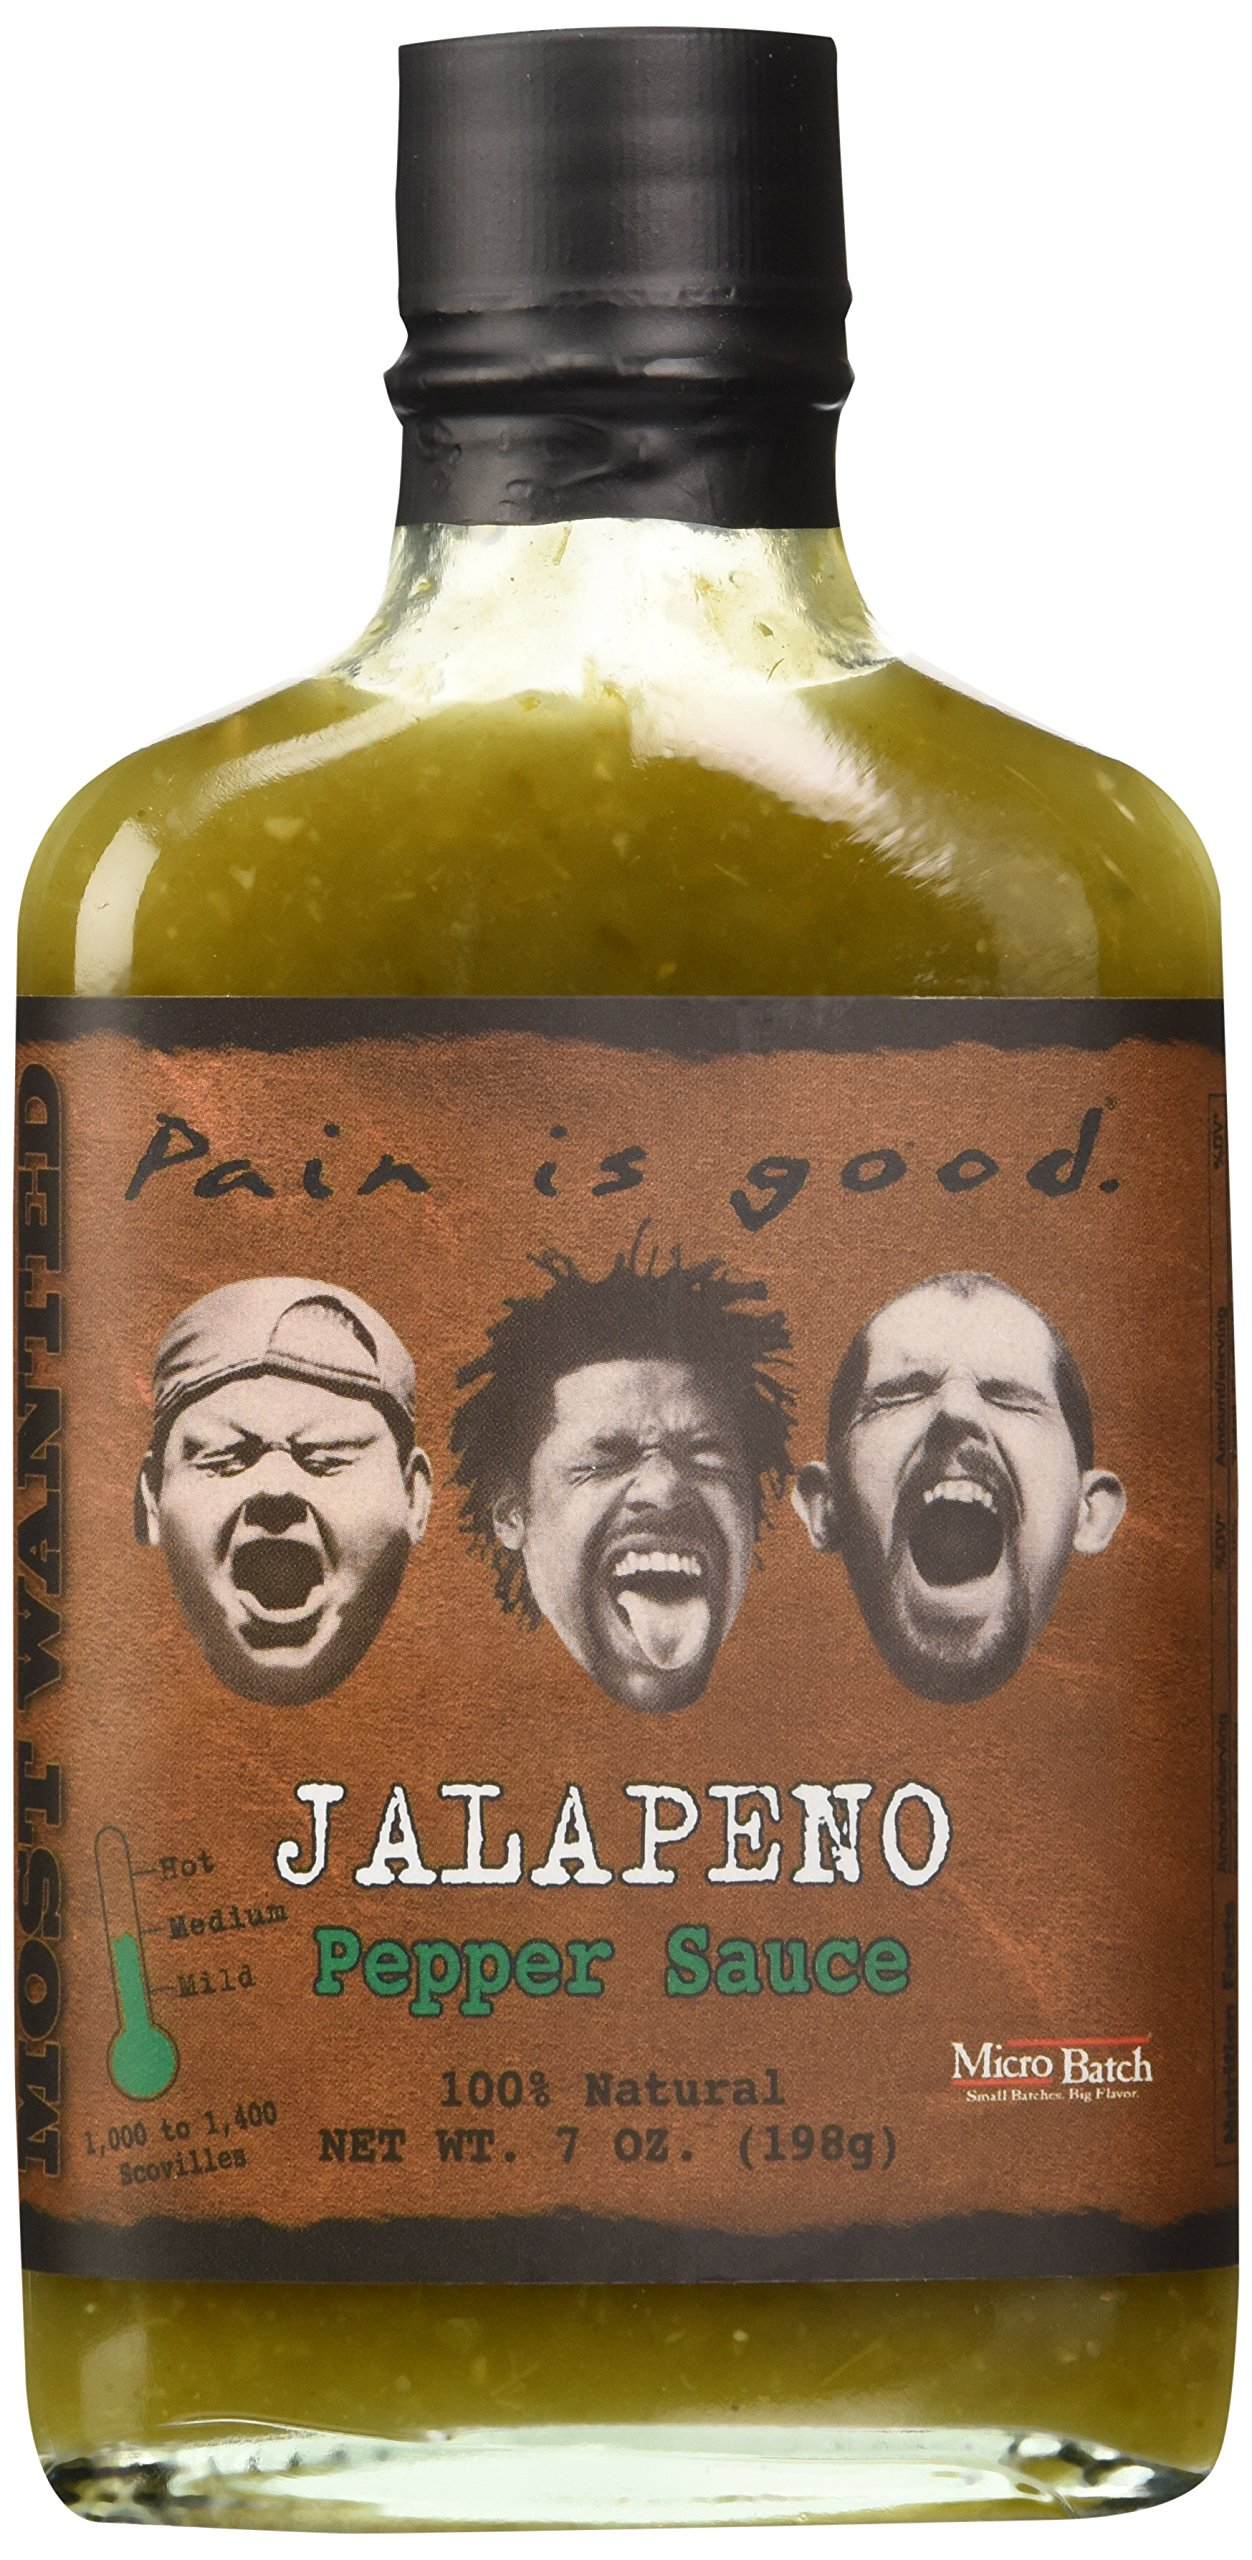 Pain Is Good Jalapeno Pepper Sauce, Medium, 7 Ounce